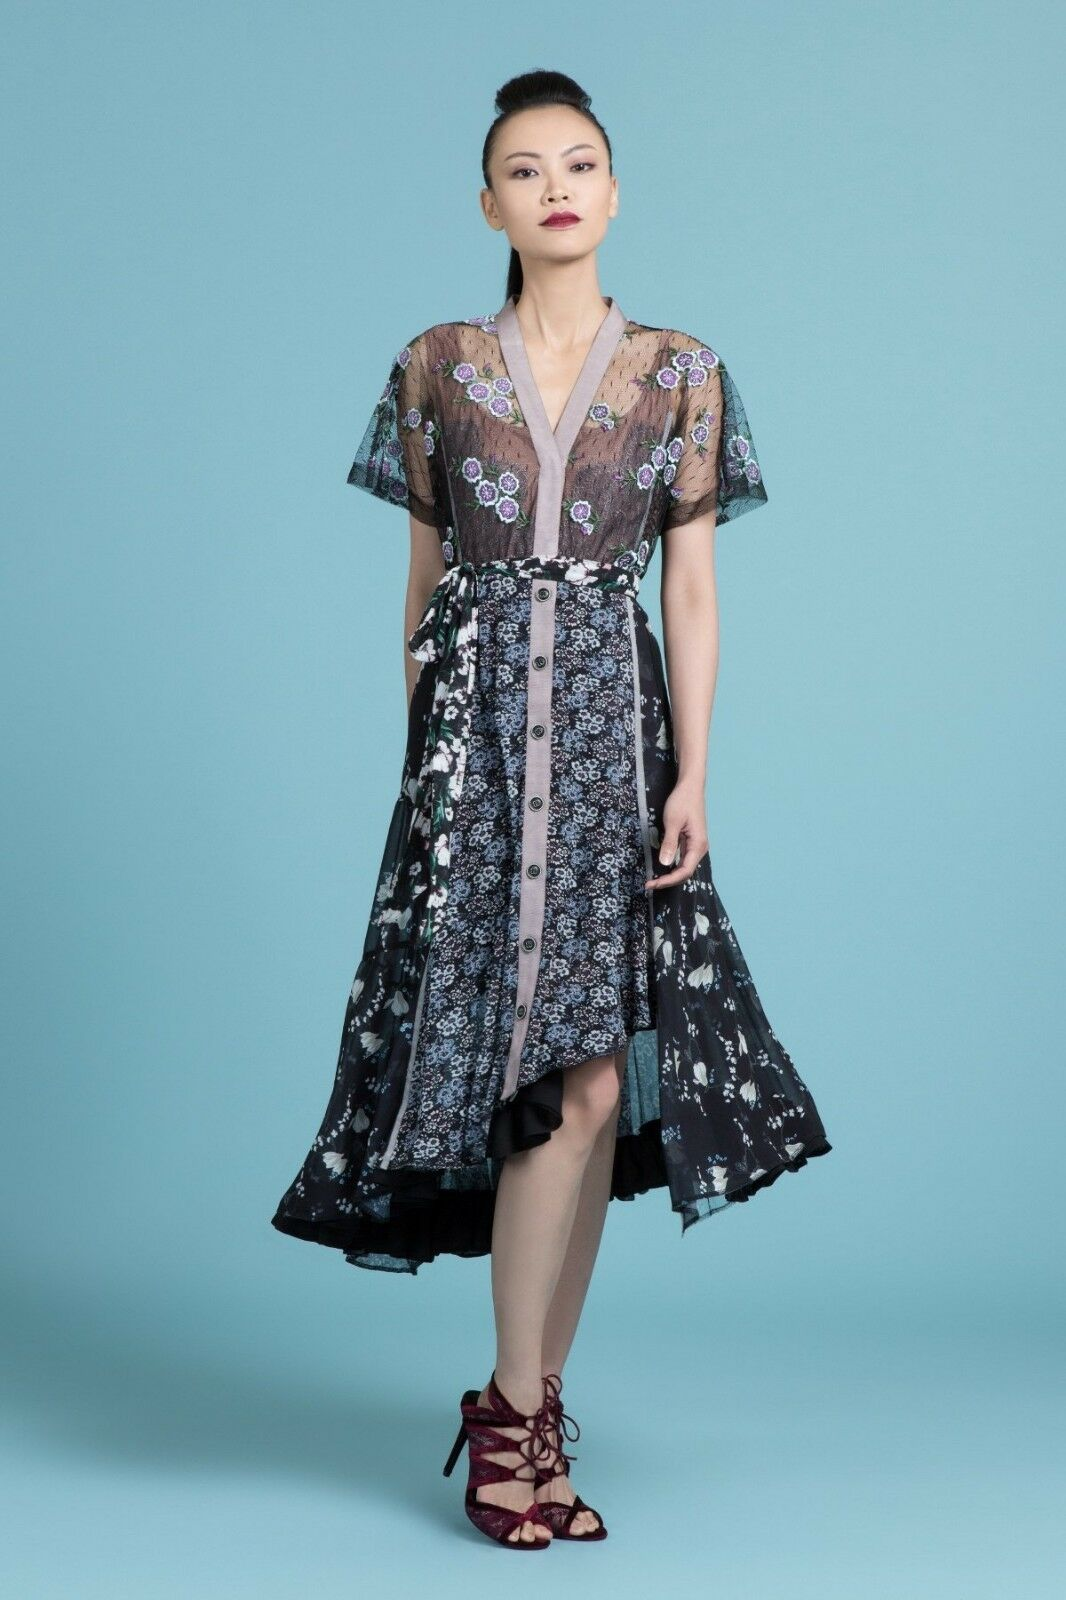 NWT BYRON LARS purpleC NIGHT CASSIE FLORAL CASCADING MIDI DRESS 10, 12